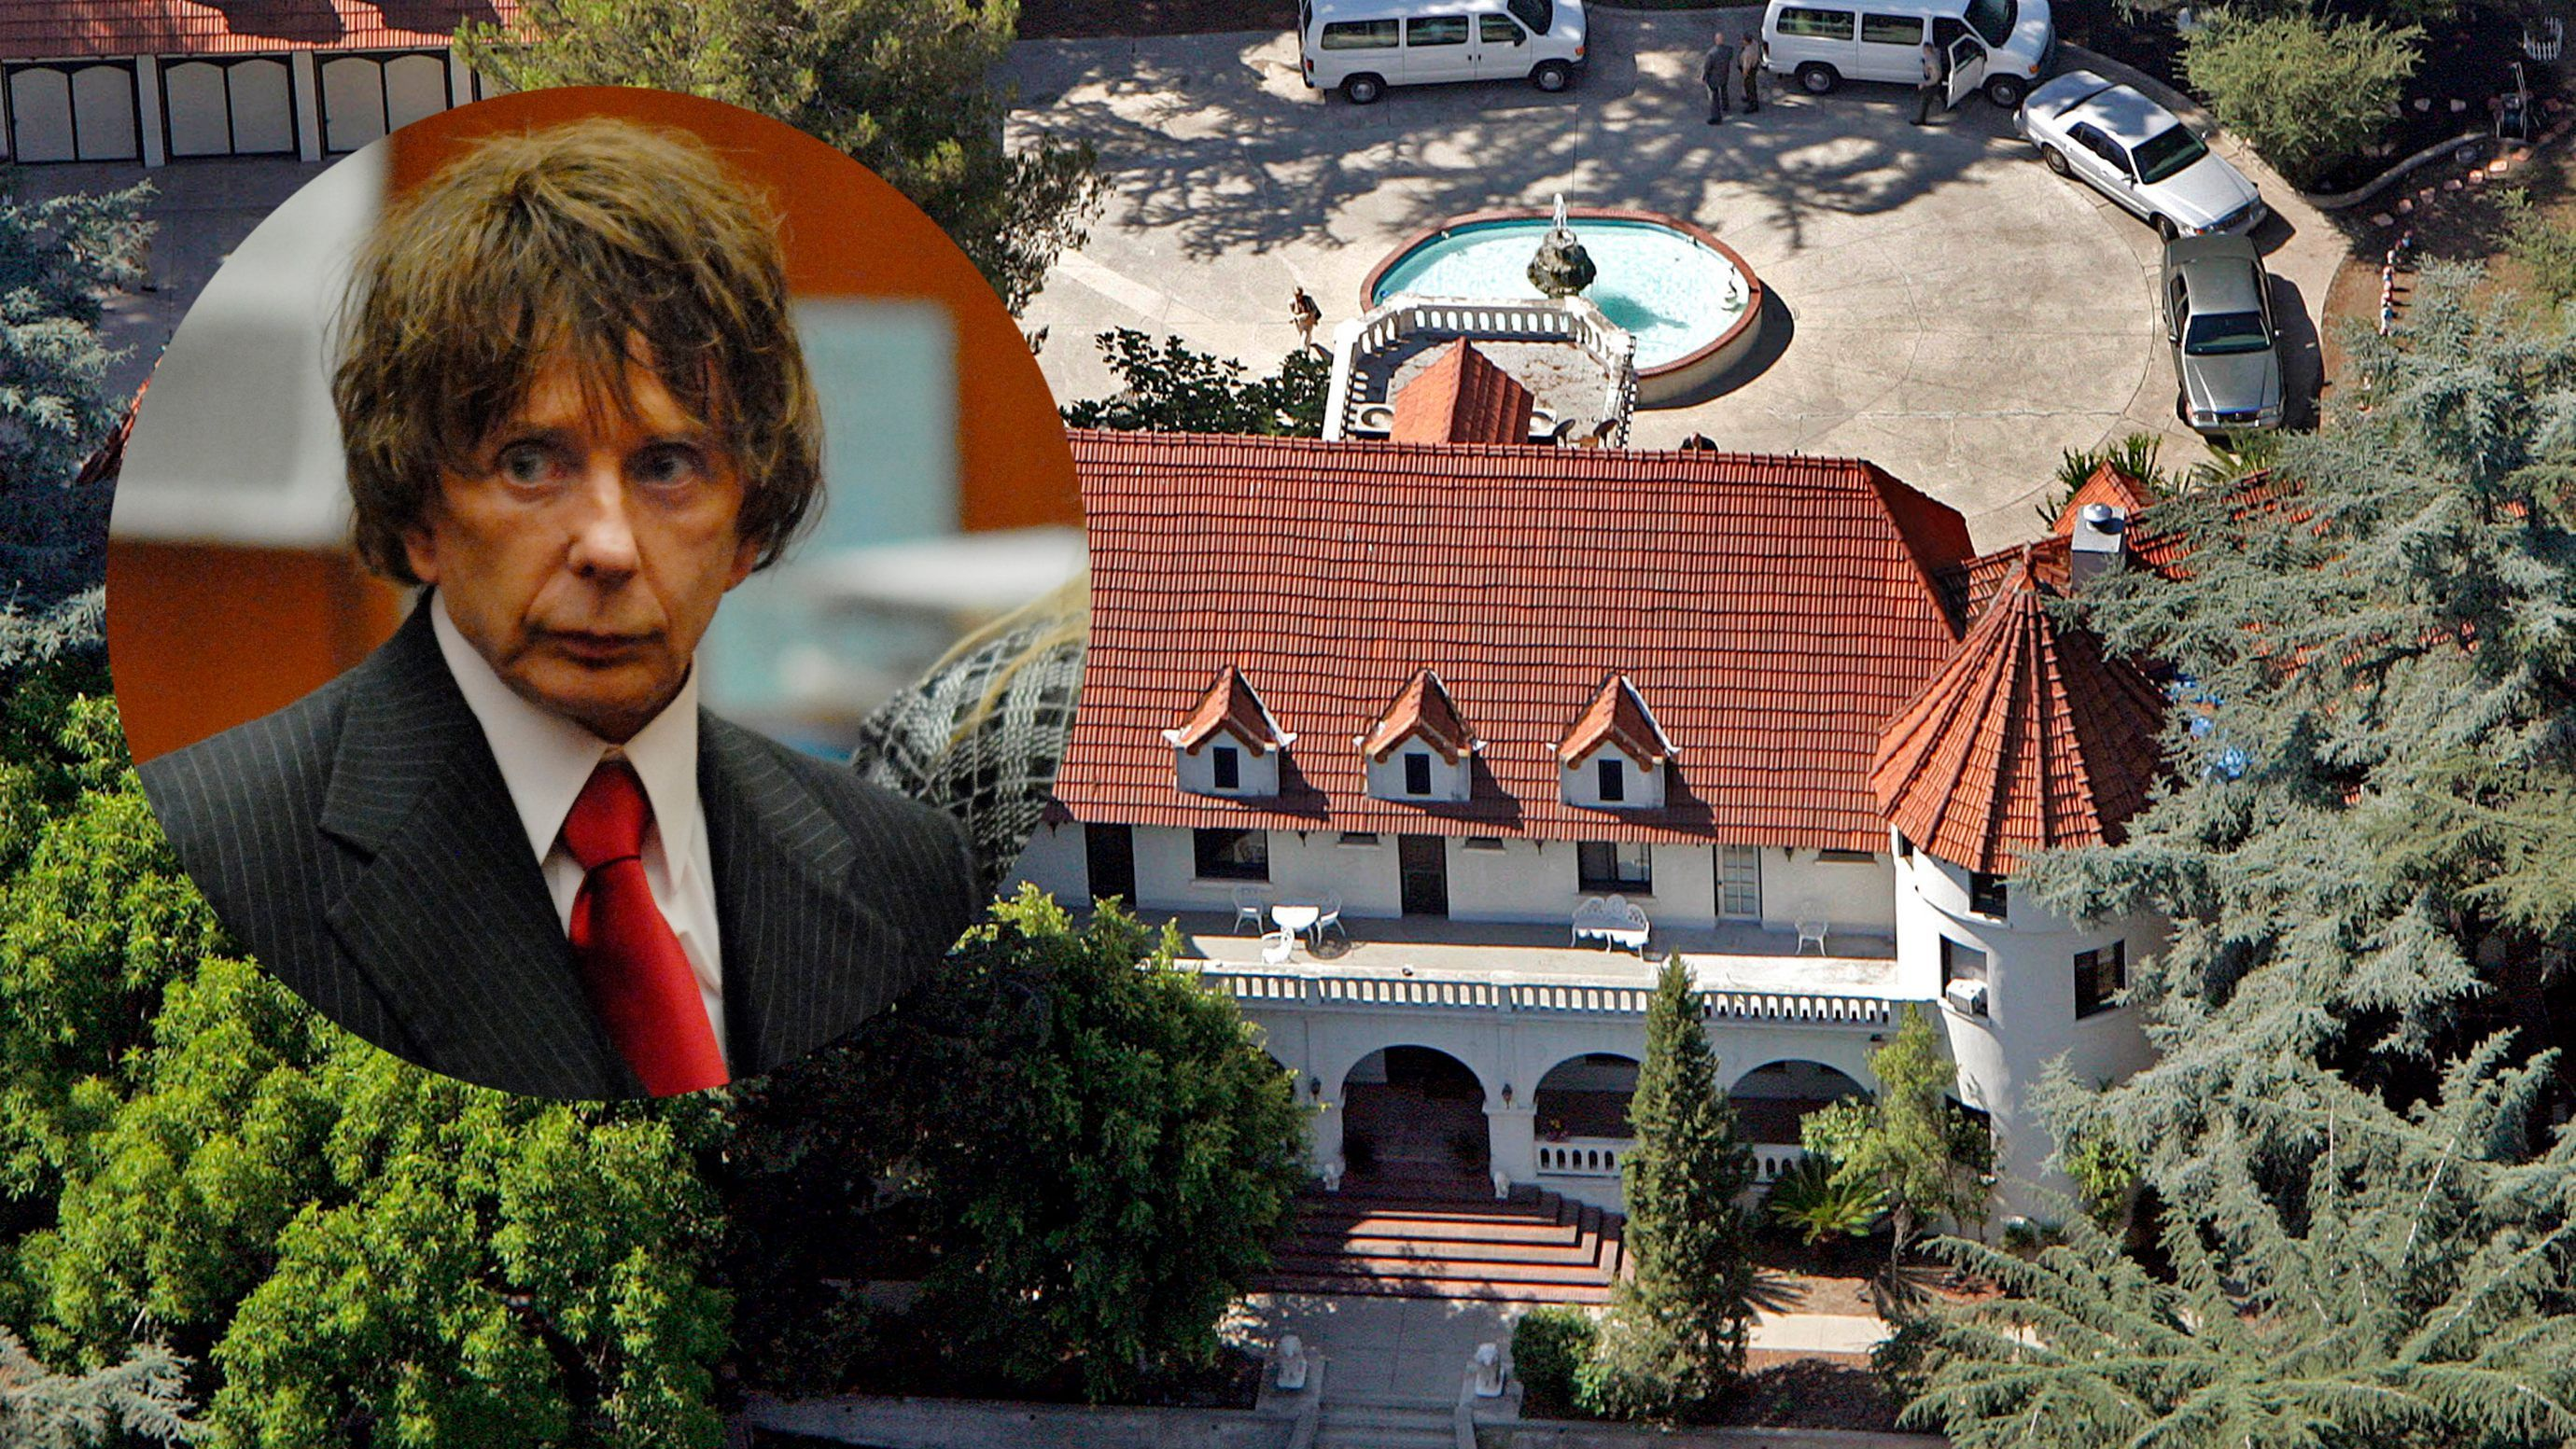 Fox News Phil Spector S Infamous Los Angeles Estate Selling For